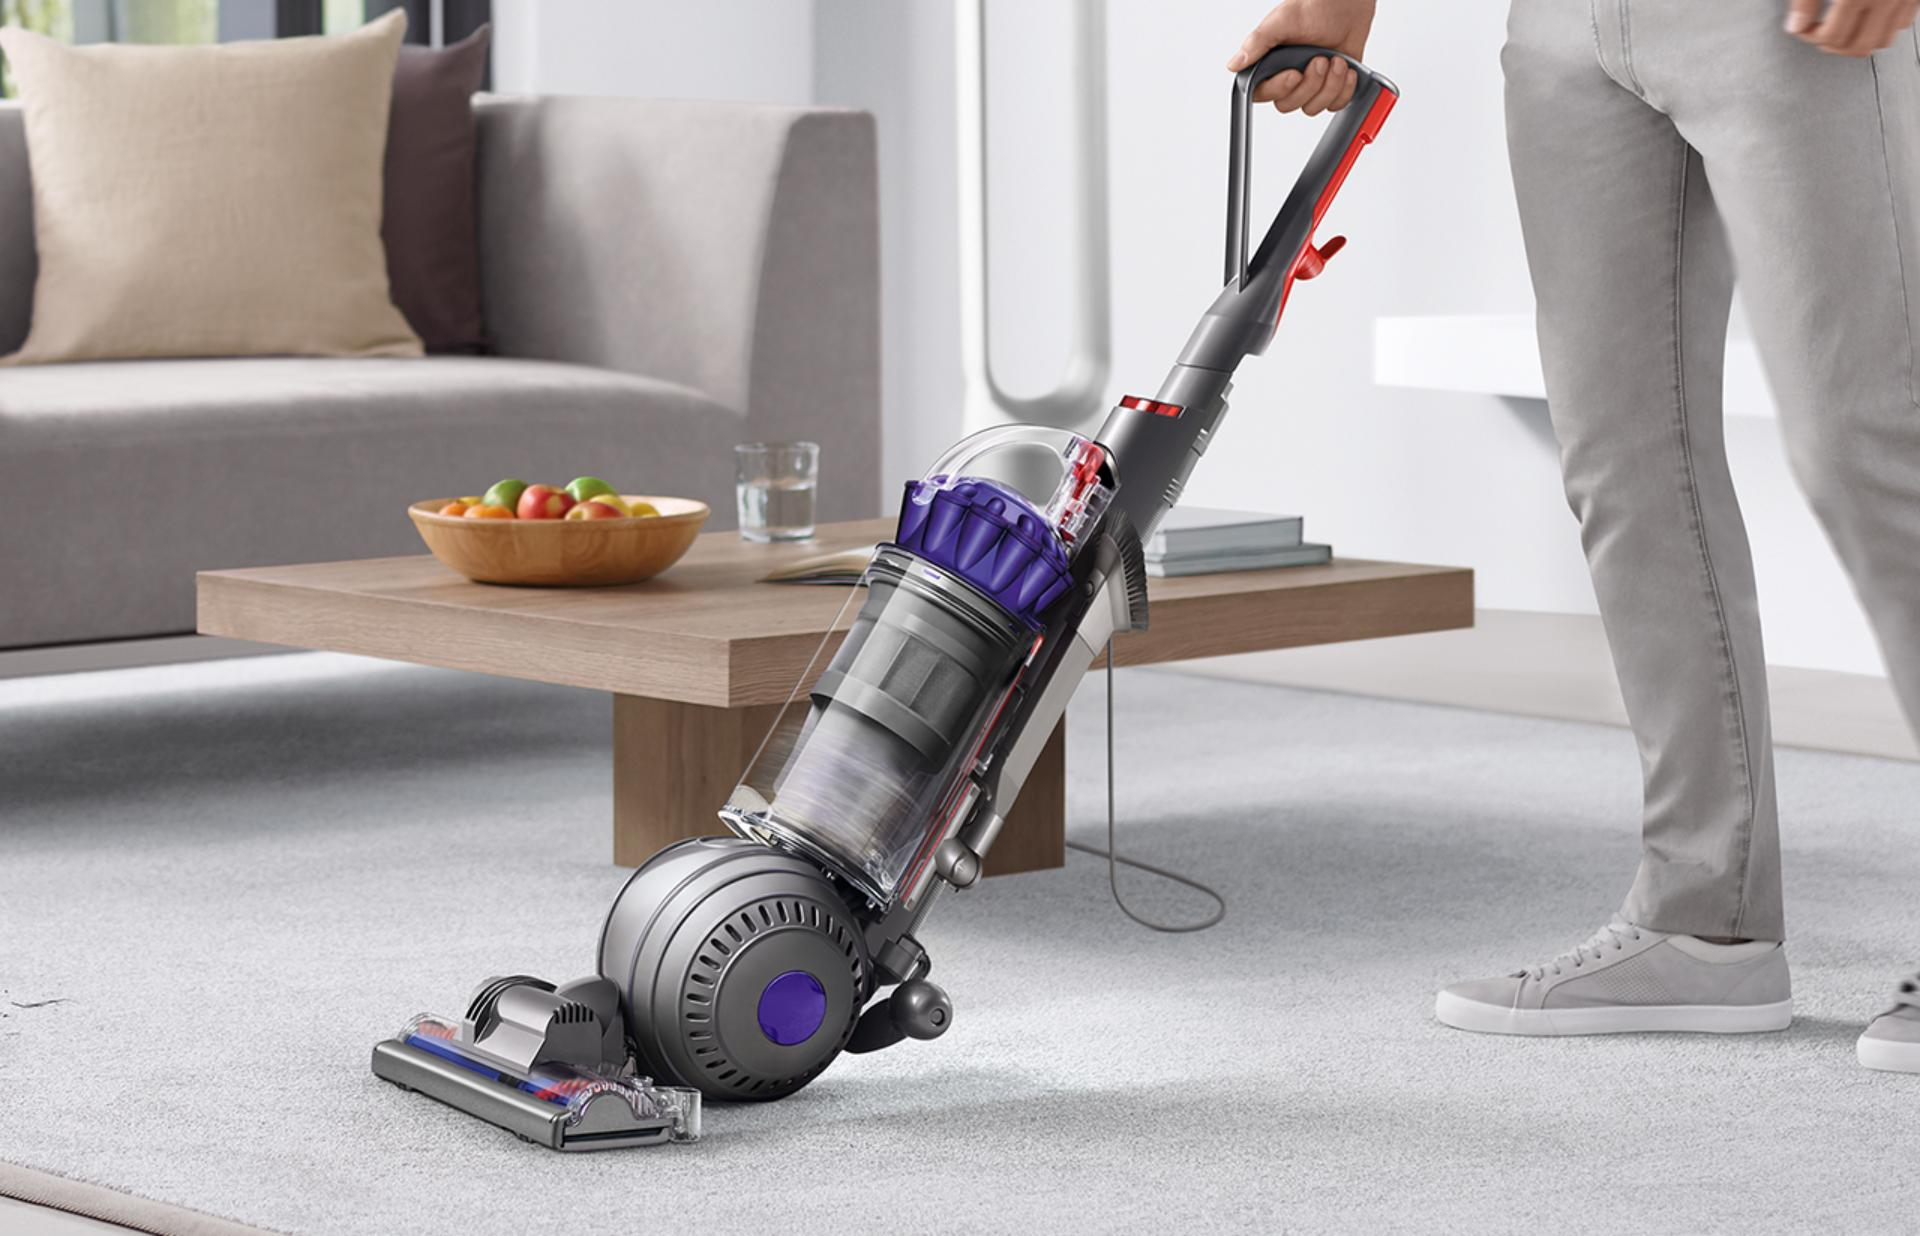 A man vacuuming floor using the Dyson upright vacuum cleaner